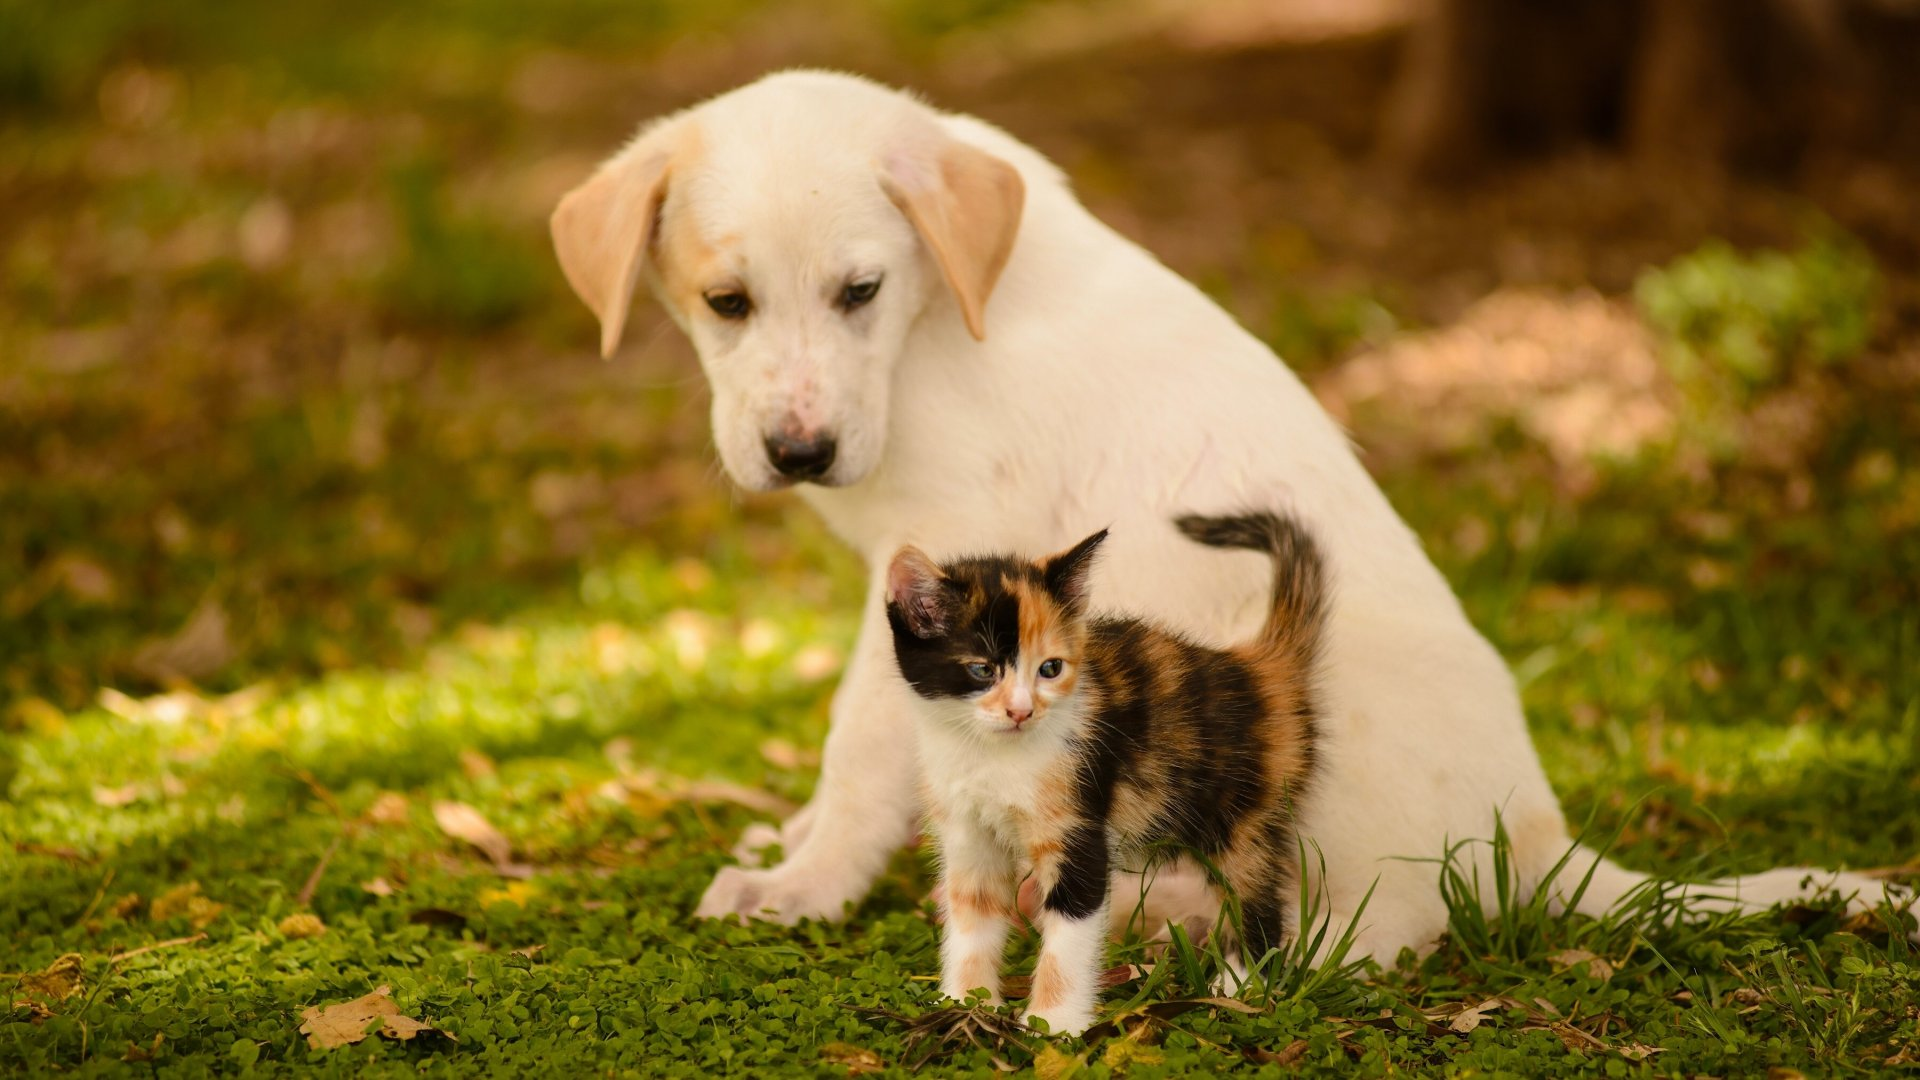 cute dog and cat wallpaper | pixelstalk